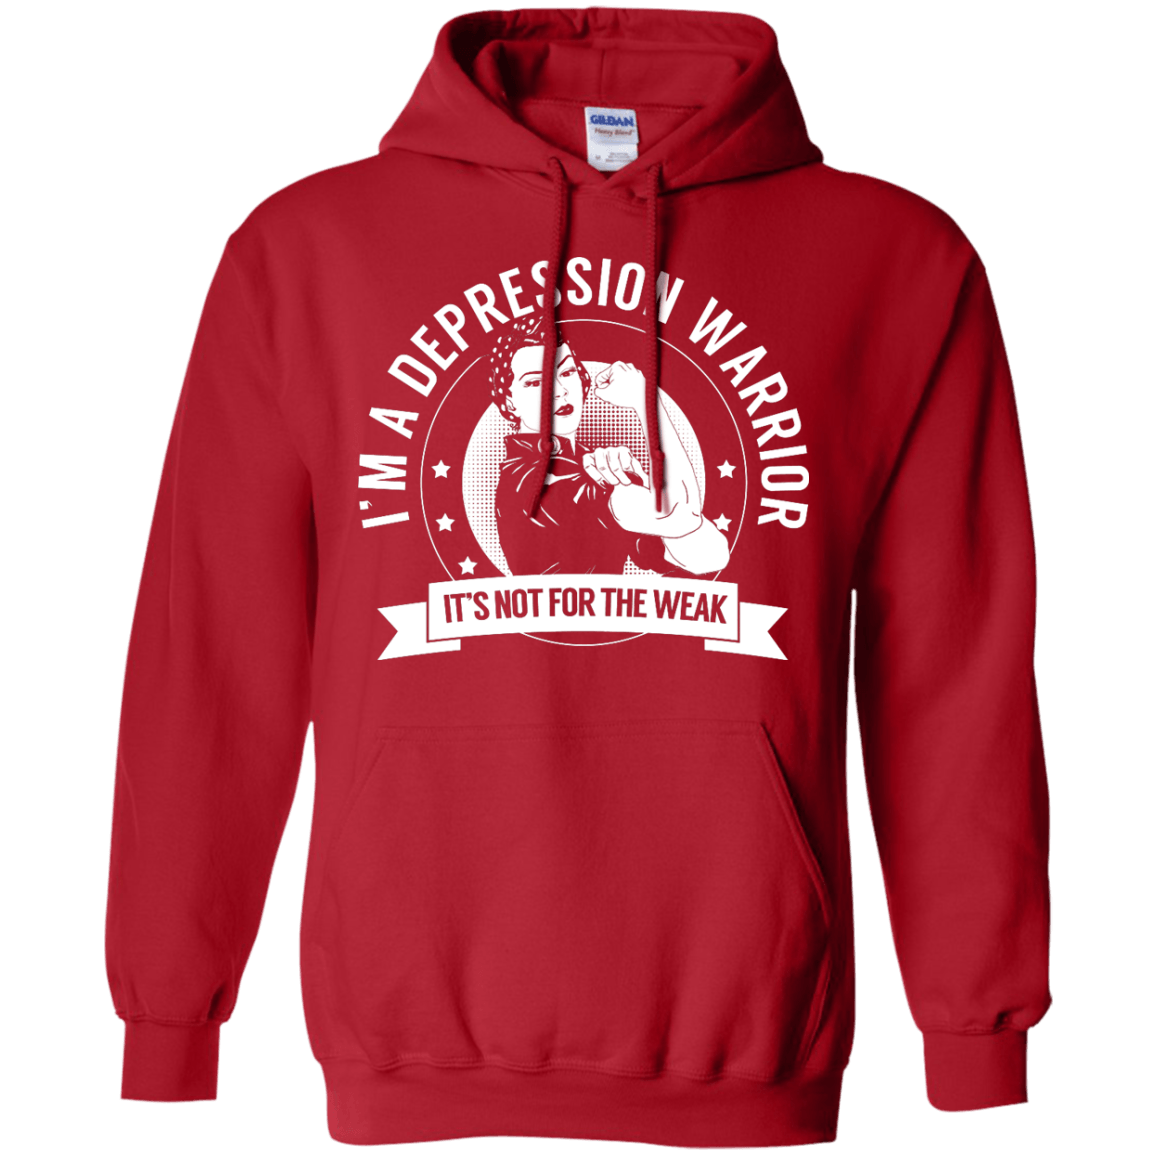 Hoodies - Depression Warrior Not For The Weak Pullover Hoodie 8 Oz